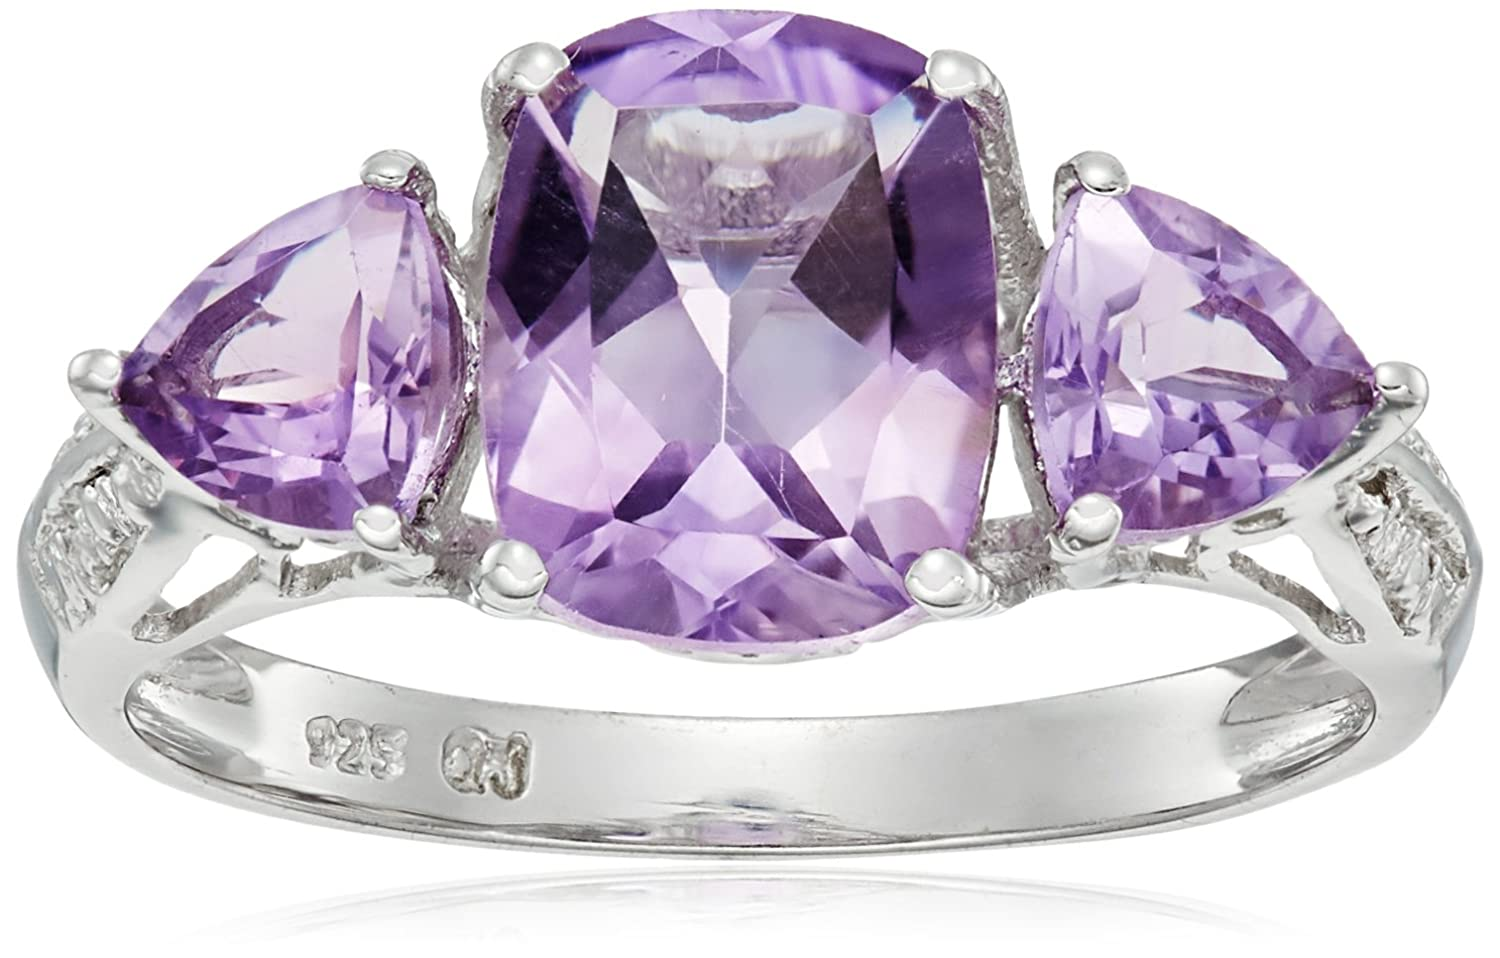 Amazon.com: 2.34 Carat Genuine Amethyst .925 Sterling Silver Ring: Jewelry